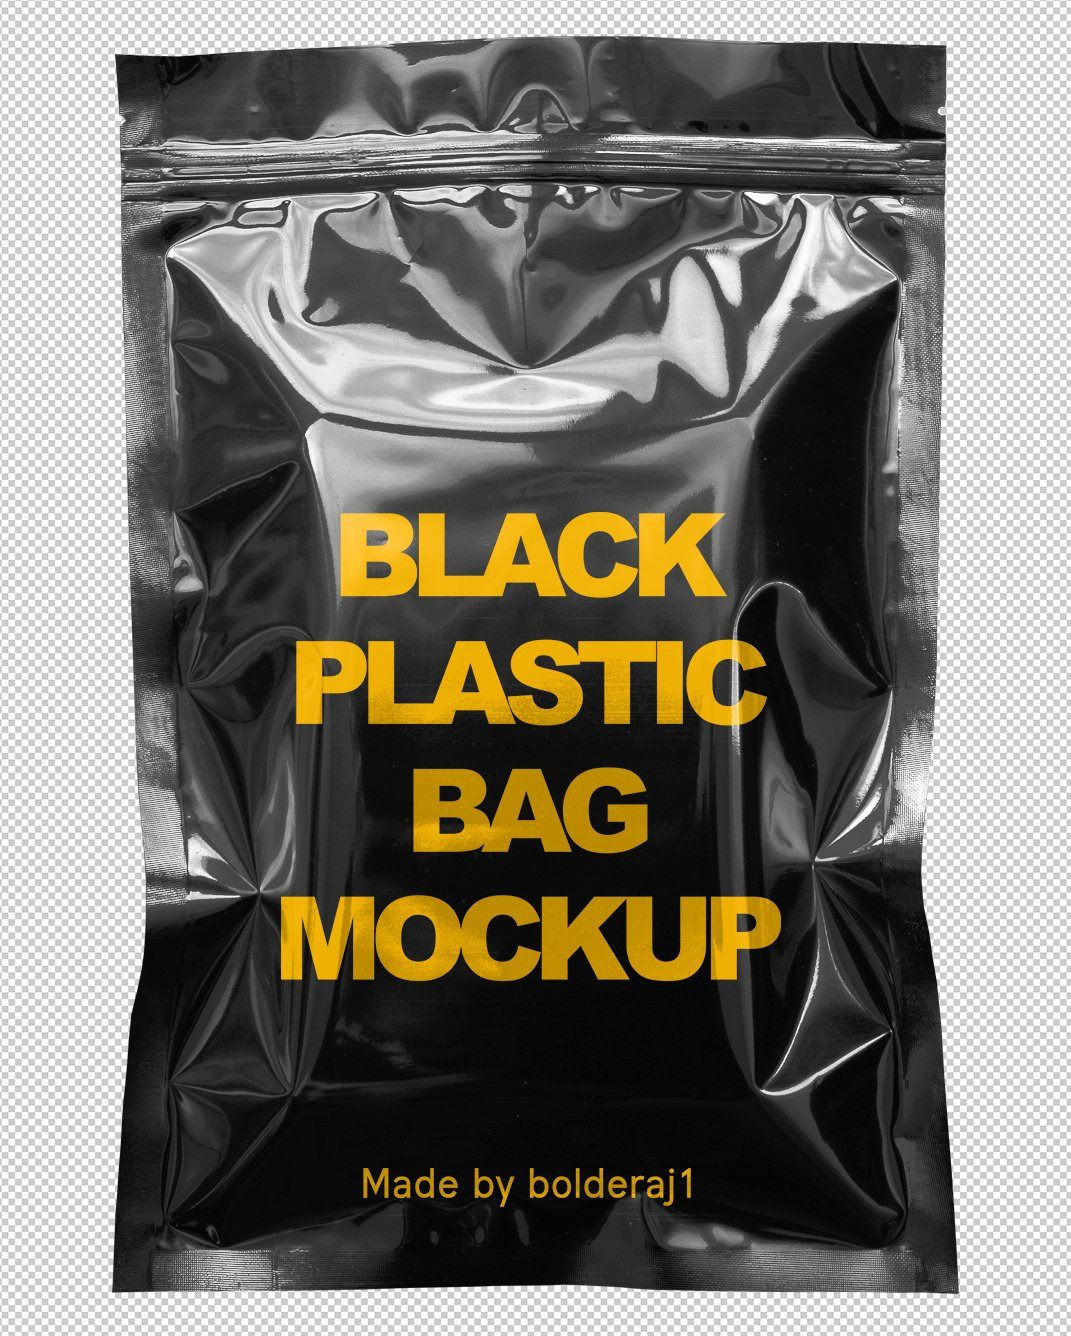 Download Black Plastic Bag Mockup Bag Mockup Plastic Bag Online Bags